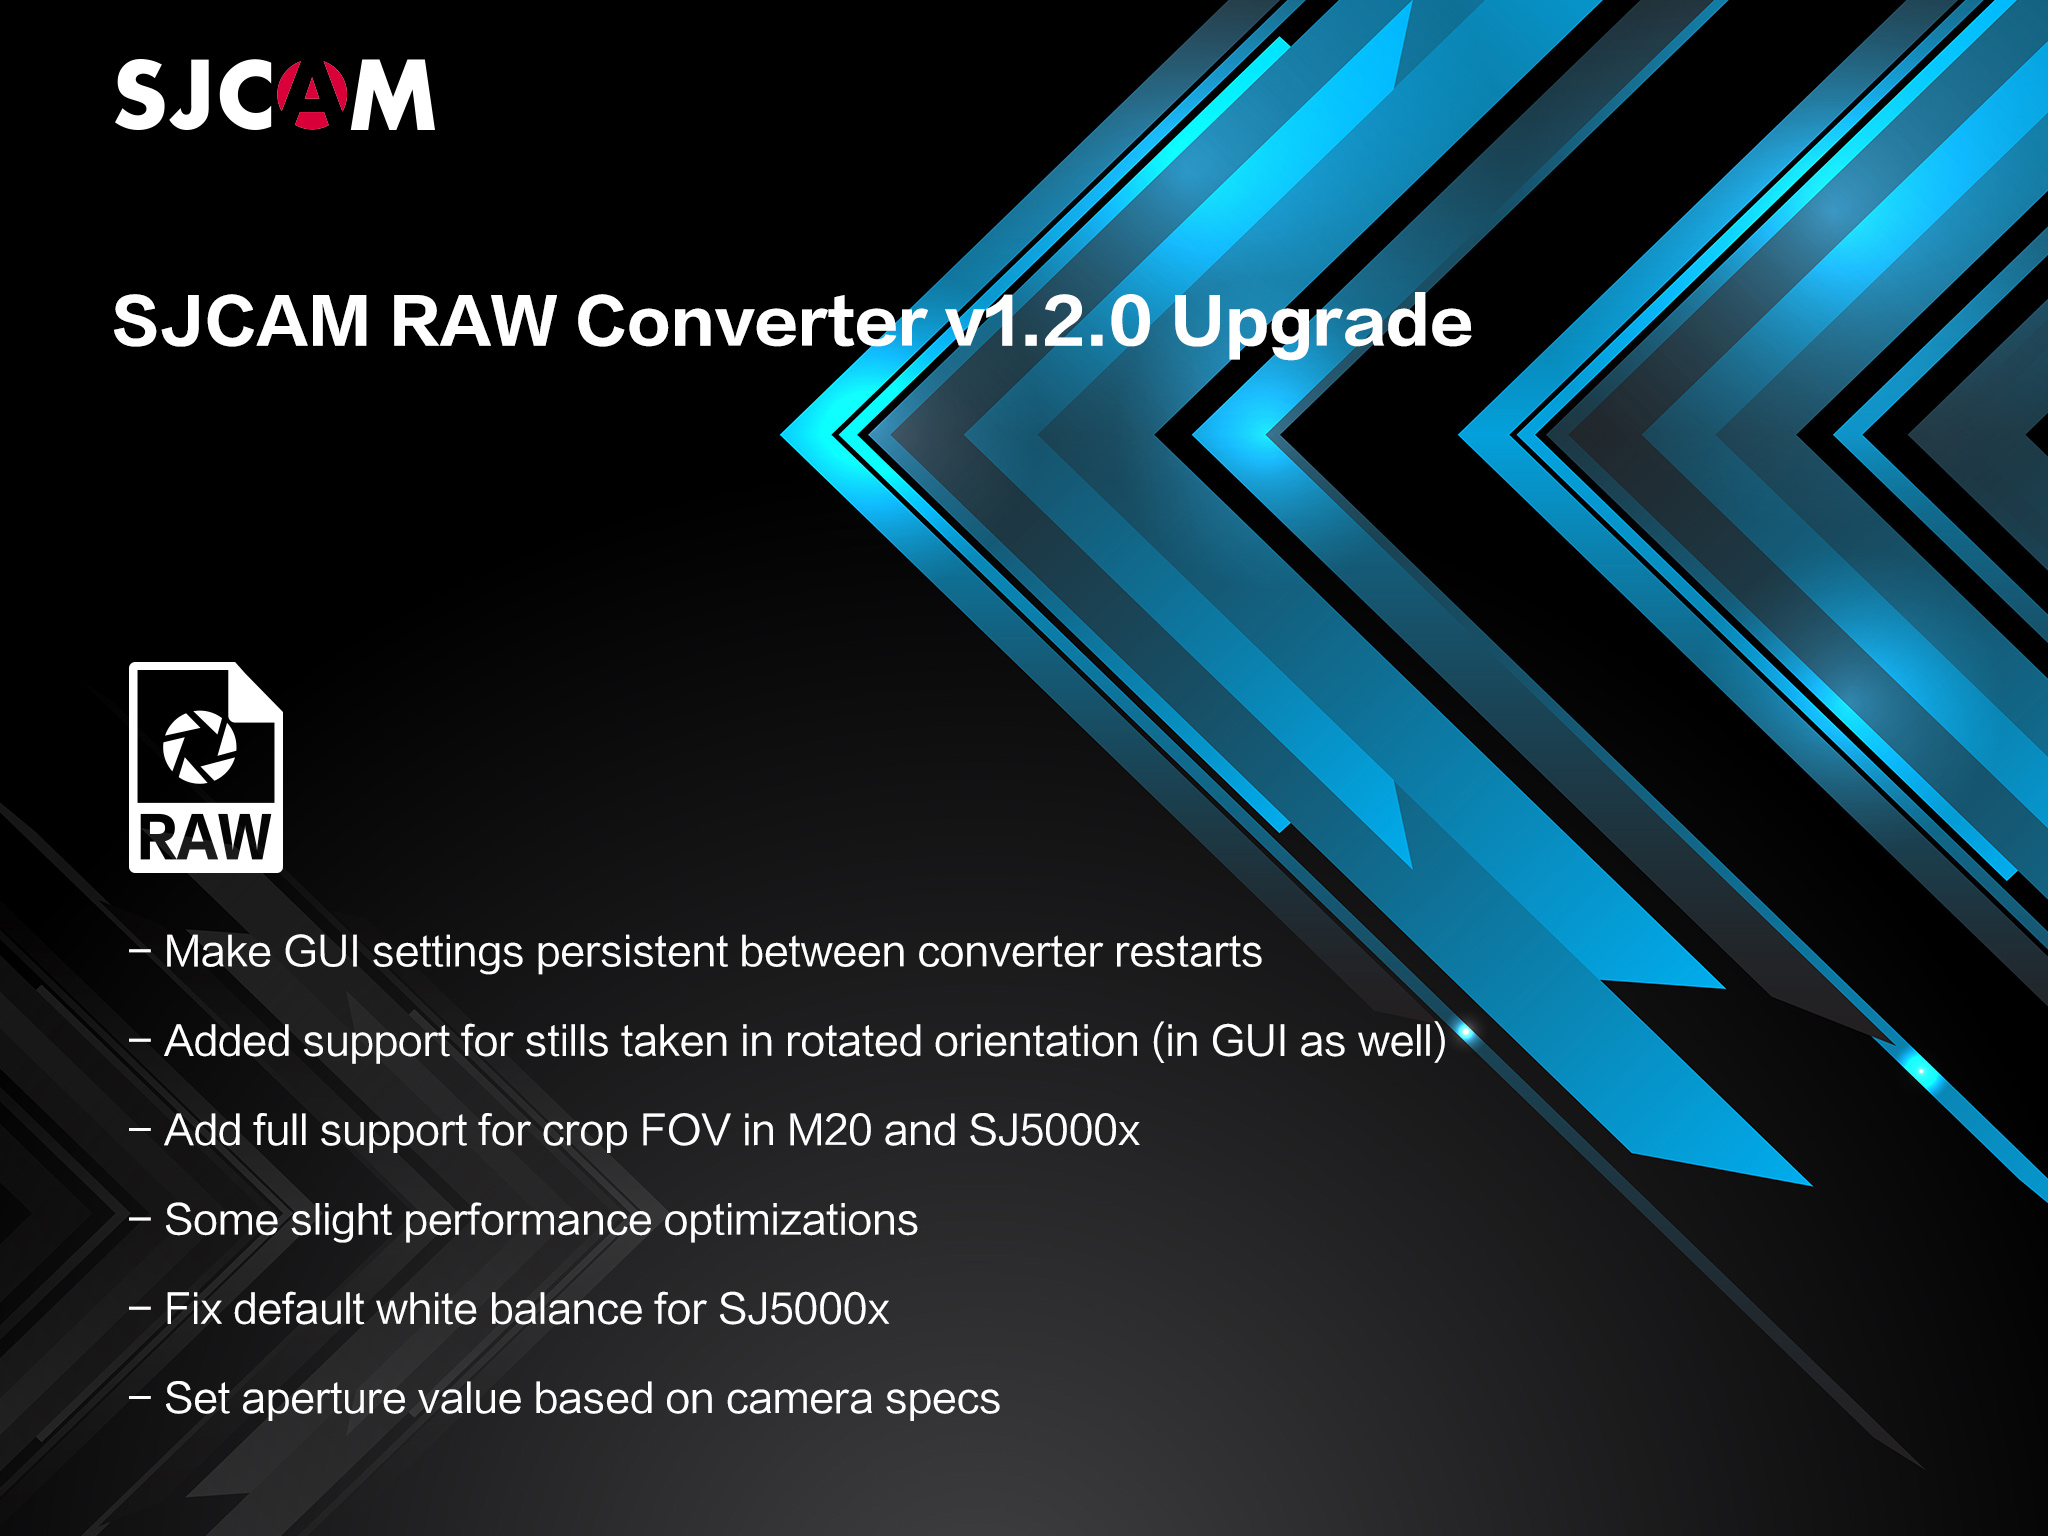 SJCAM v1.2.0 RAW Converter Tool for SJ6 Legend, SJ5000x, M20 Here!